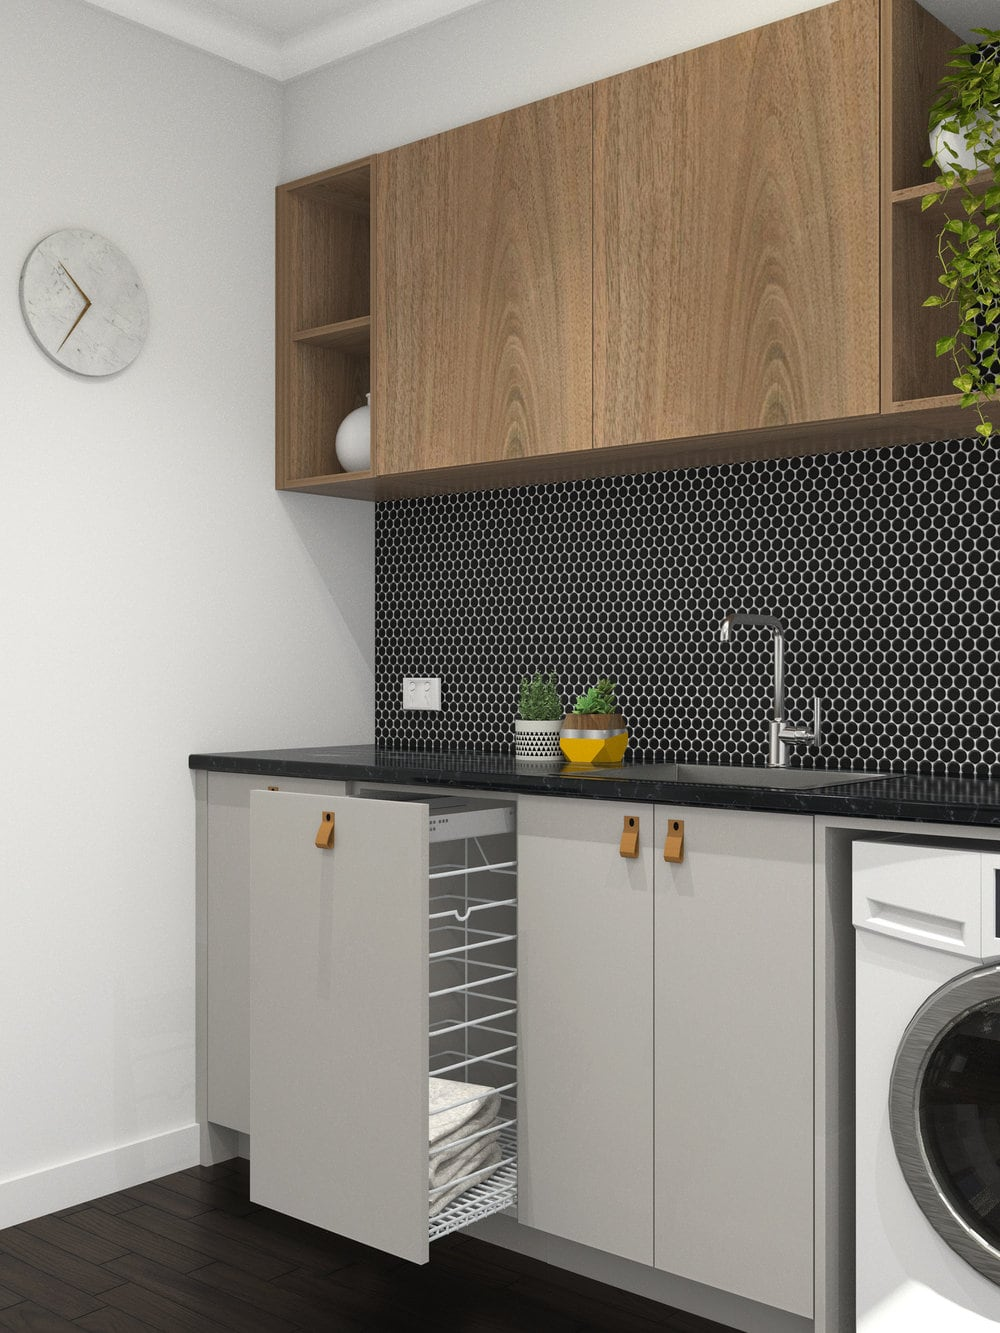 grey laundry room with black tiles and tan leather cabinetry handles